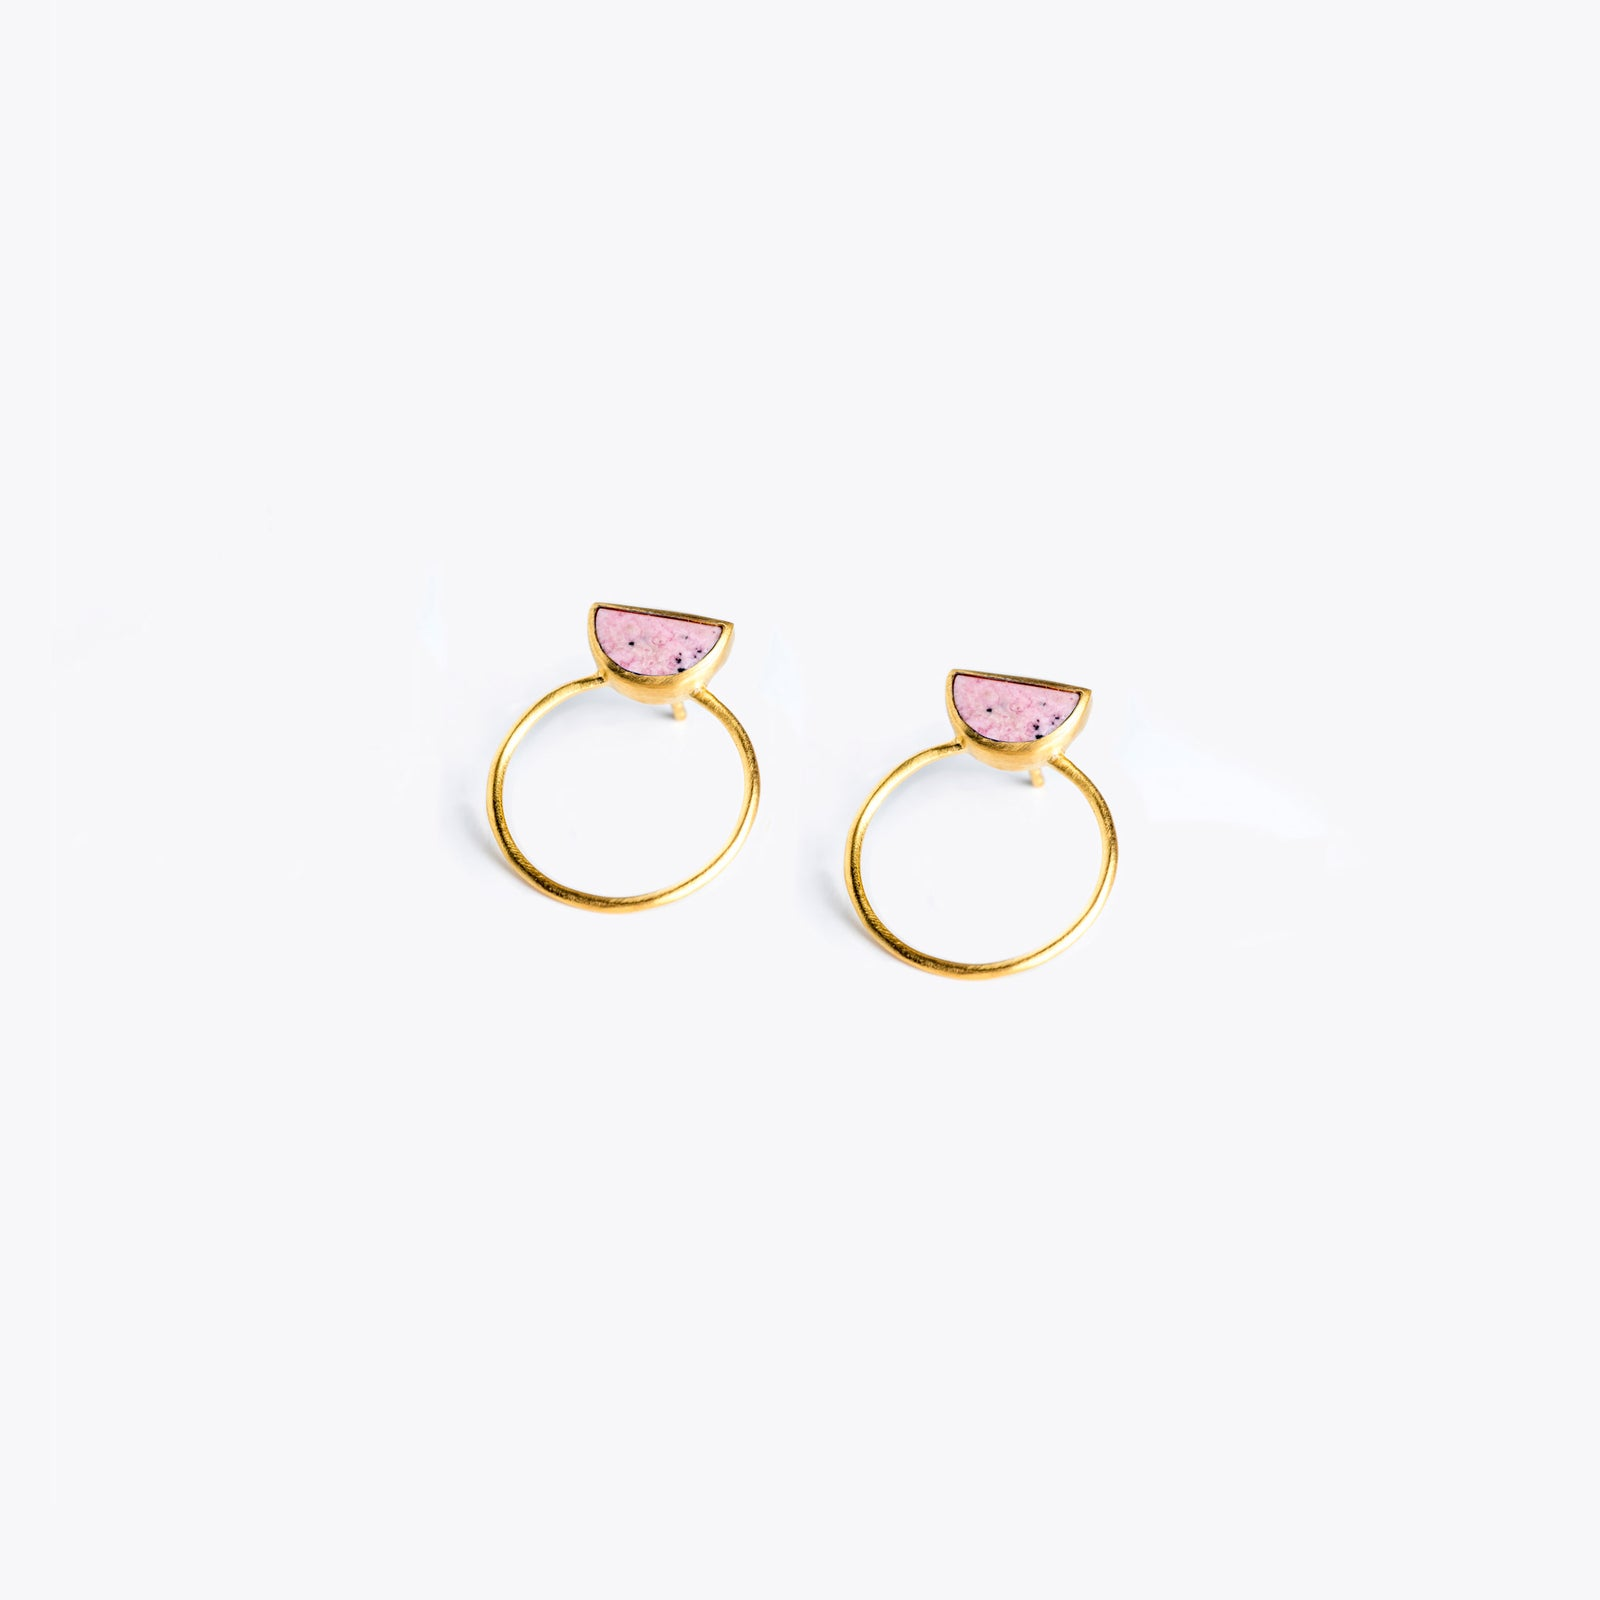 Wanderlust Life Ethically Handmade jewellery made in the UK. Minimalist gold and fine cord jewellery. sunburst halo earring, pink rhodonite